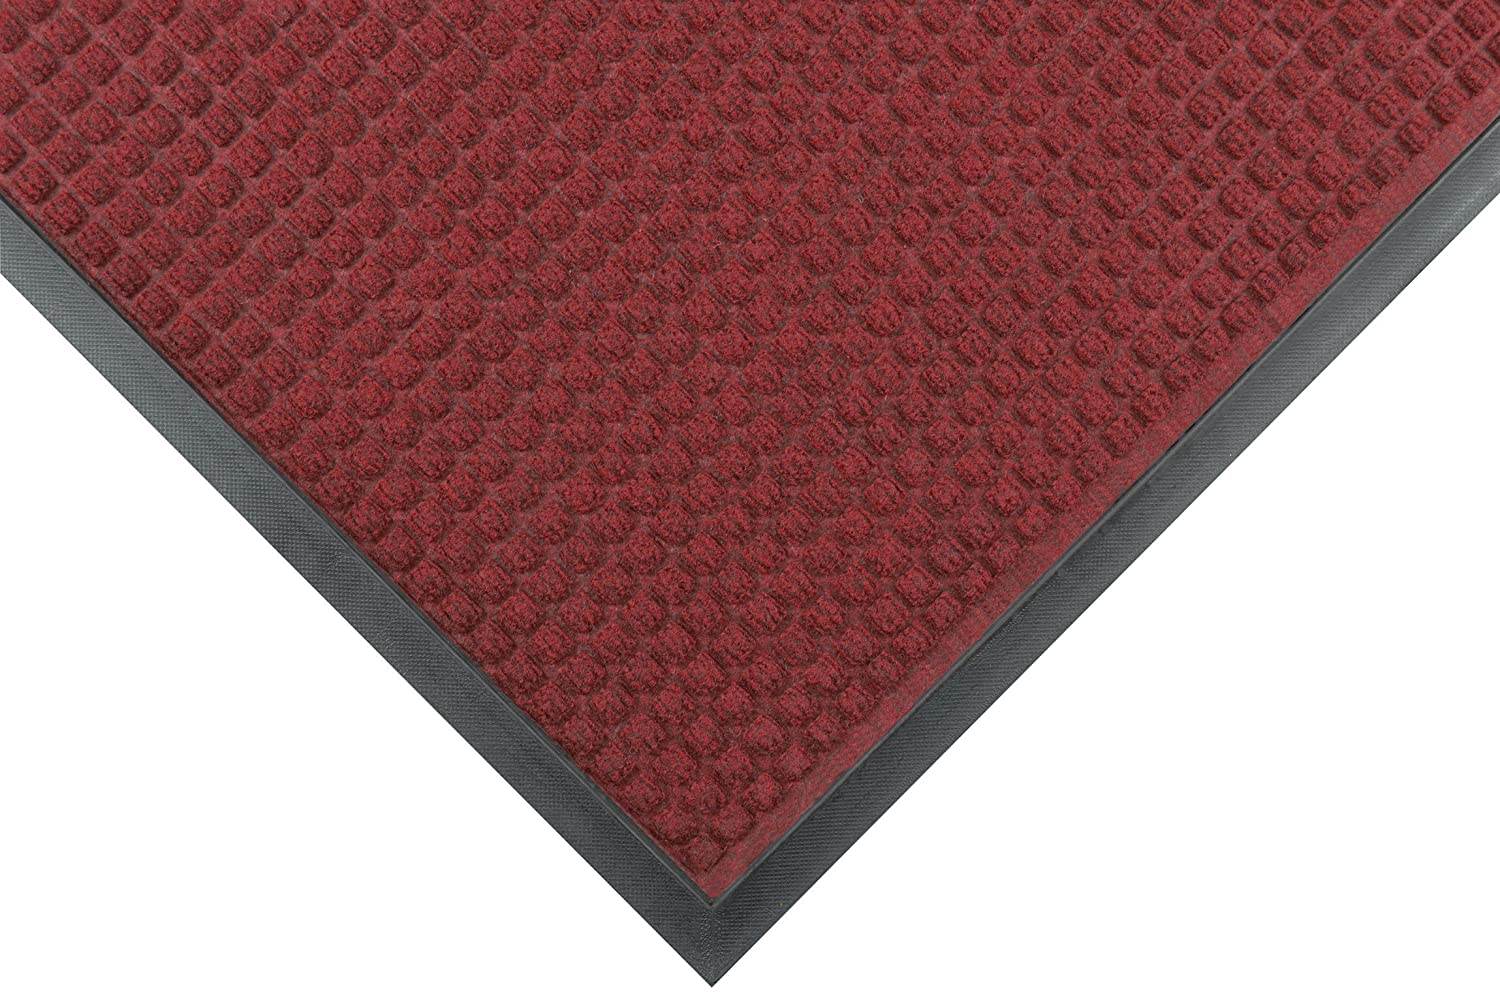 Notrax Mats for Professional Use 166S0034RB Guzzler robust barrier mat with moulded cubes, RED